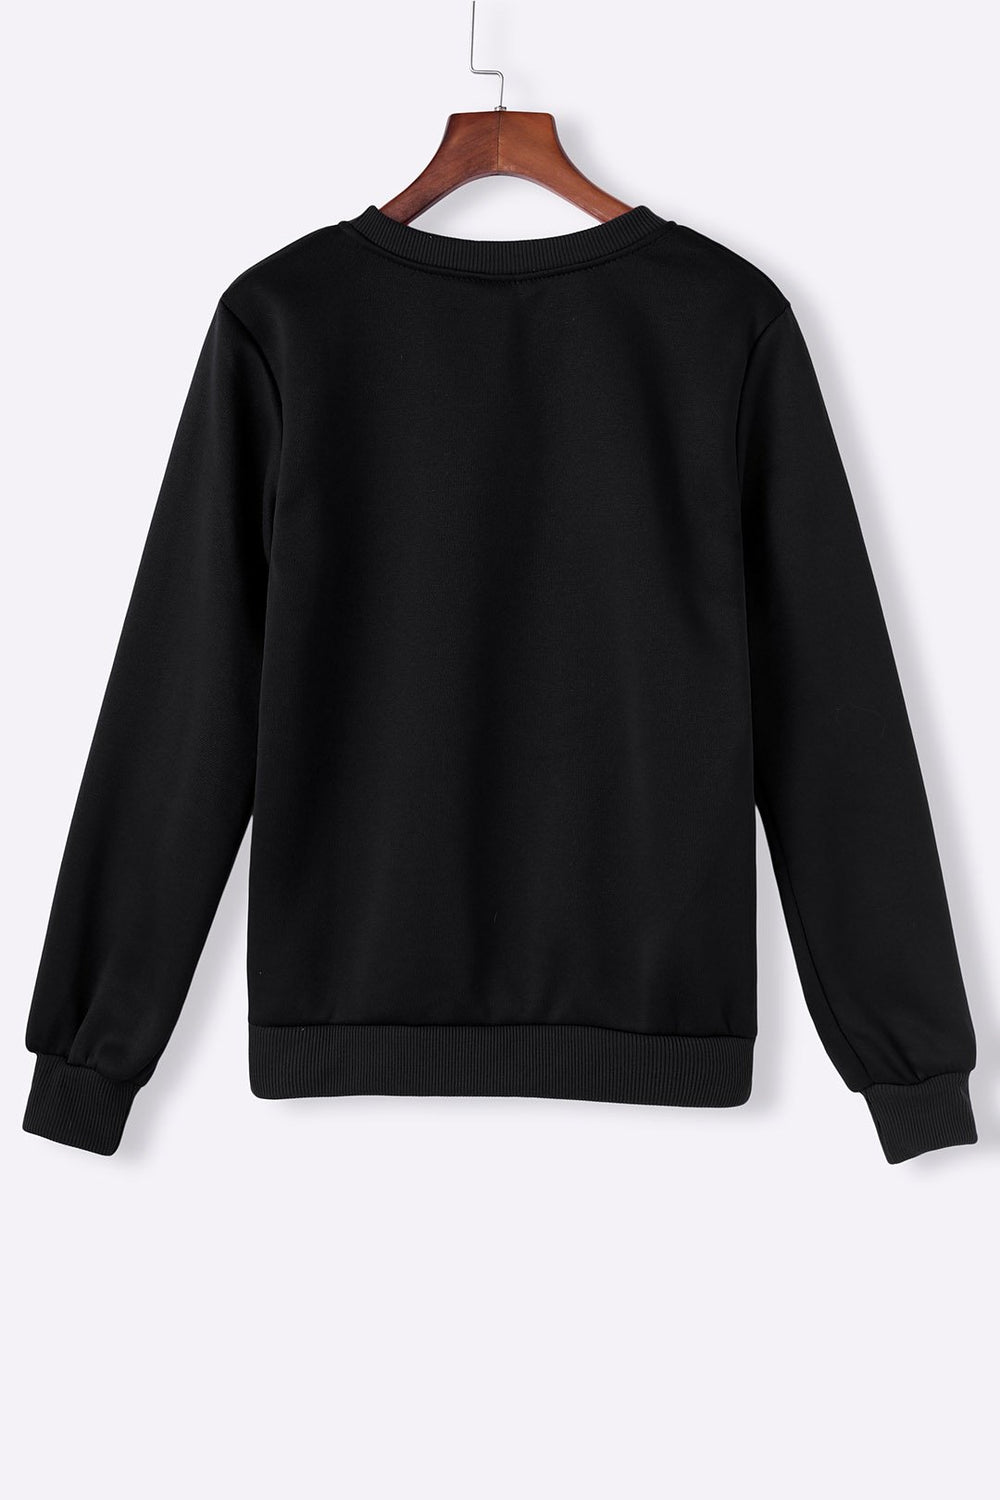 Ladies Black Sweatshirts